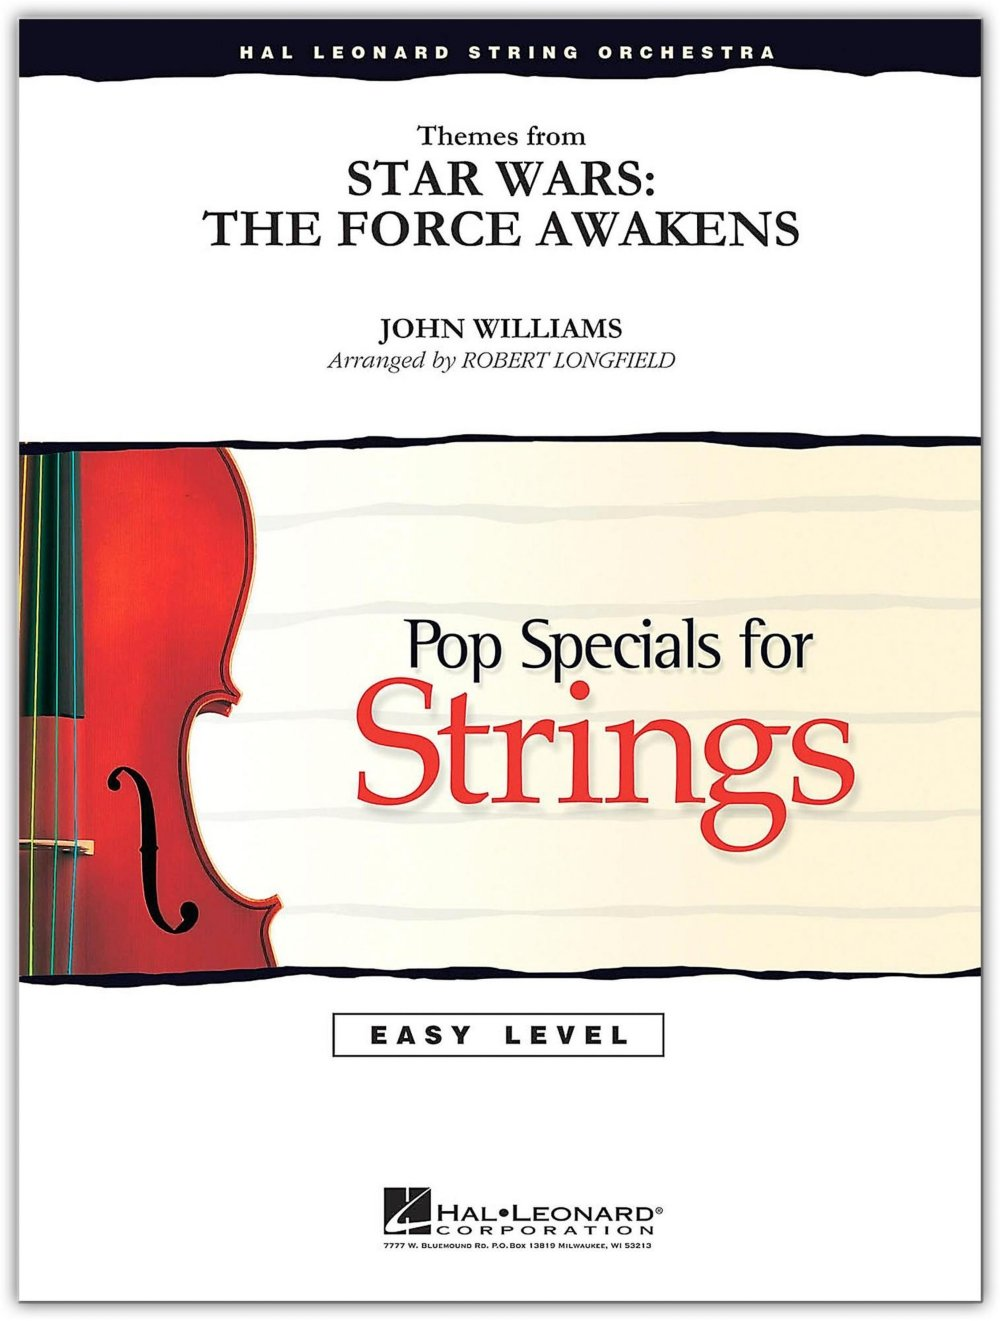 Download Hal Leonard Themes From Star Wars: The Force Awakens Easy Pop Specials For Strings by Level 2-3 by Robert Longfield ebook